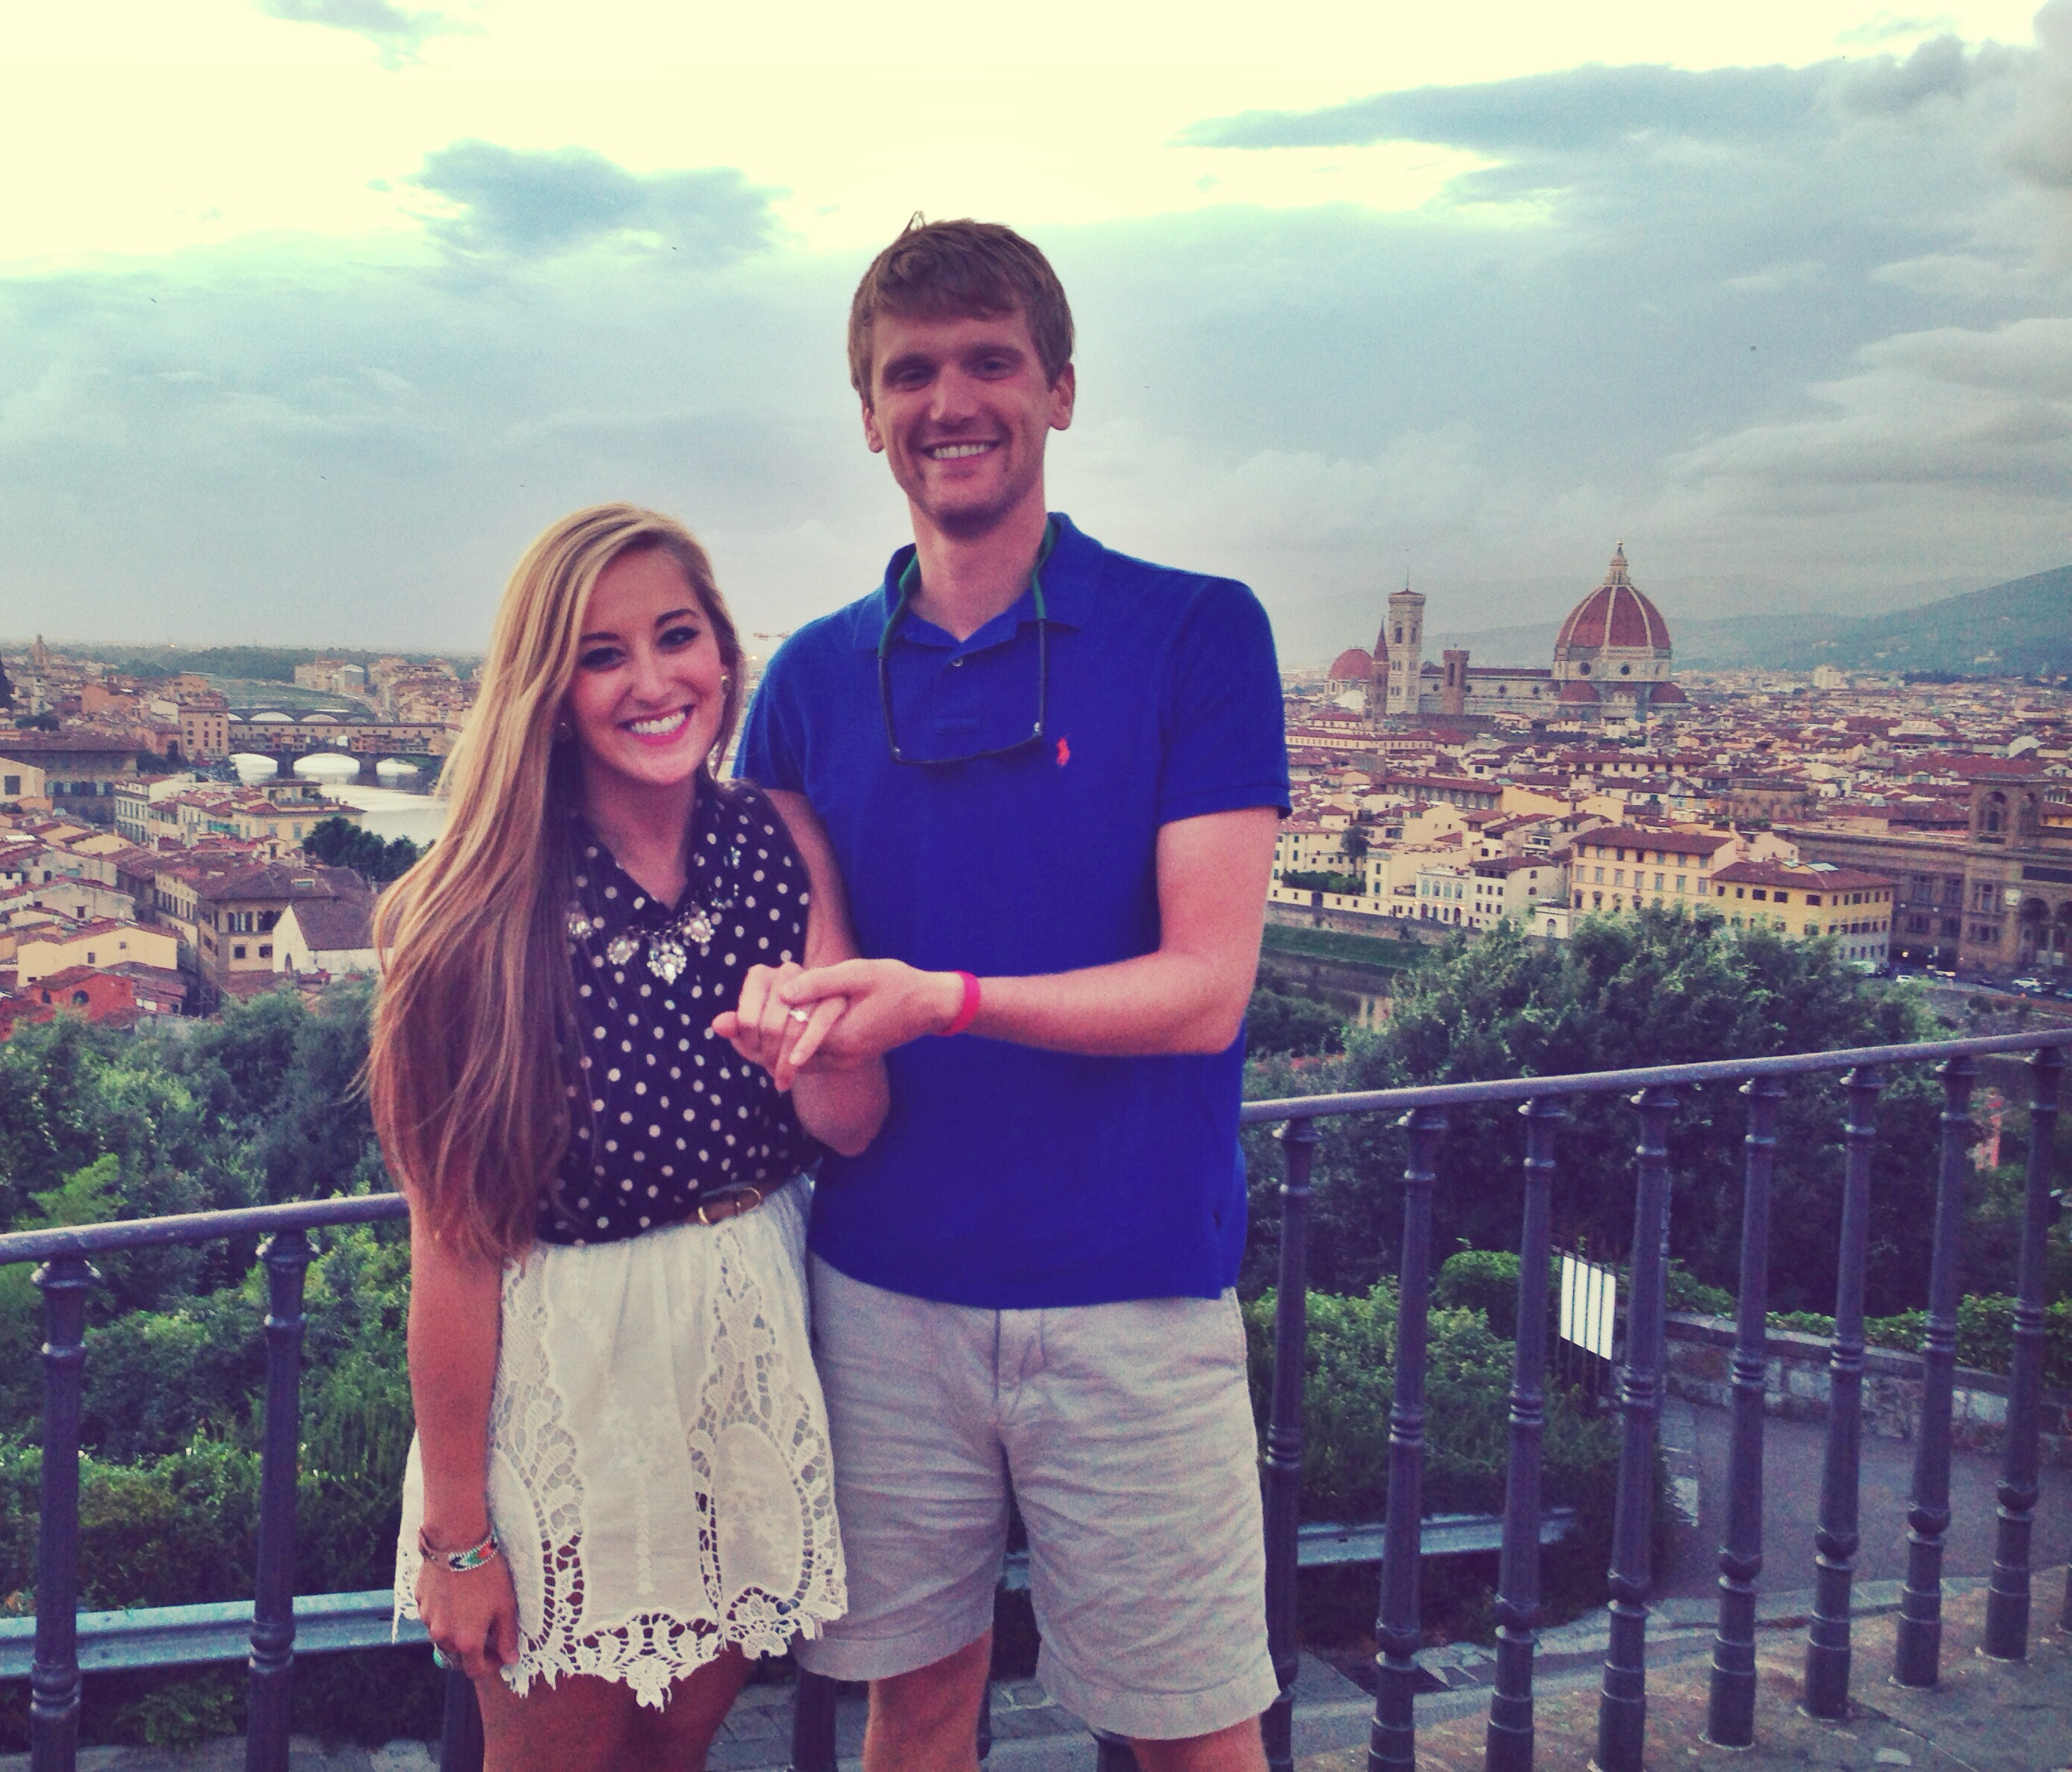 Image 4 of Kayla and John's Romantic Proposal in Florence